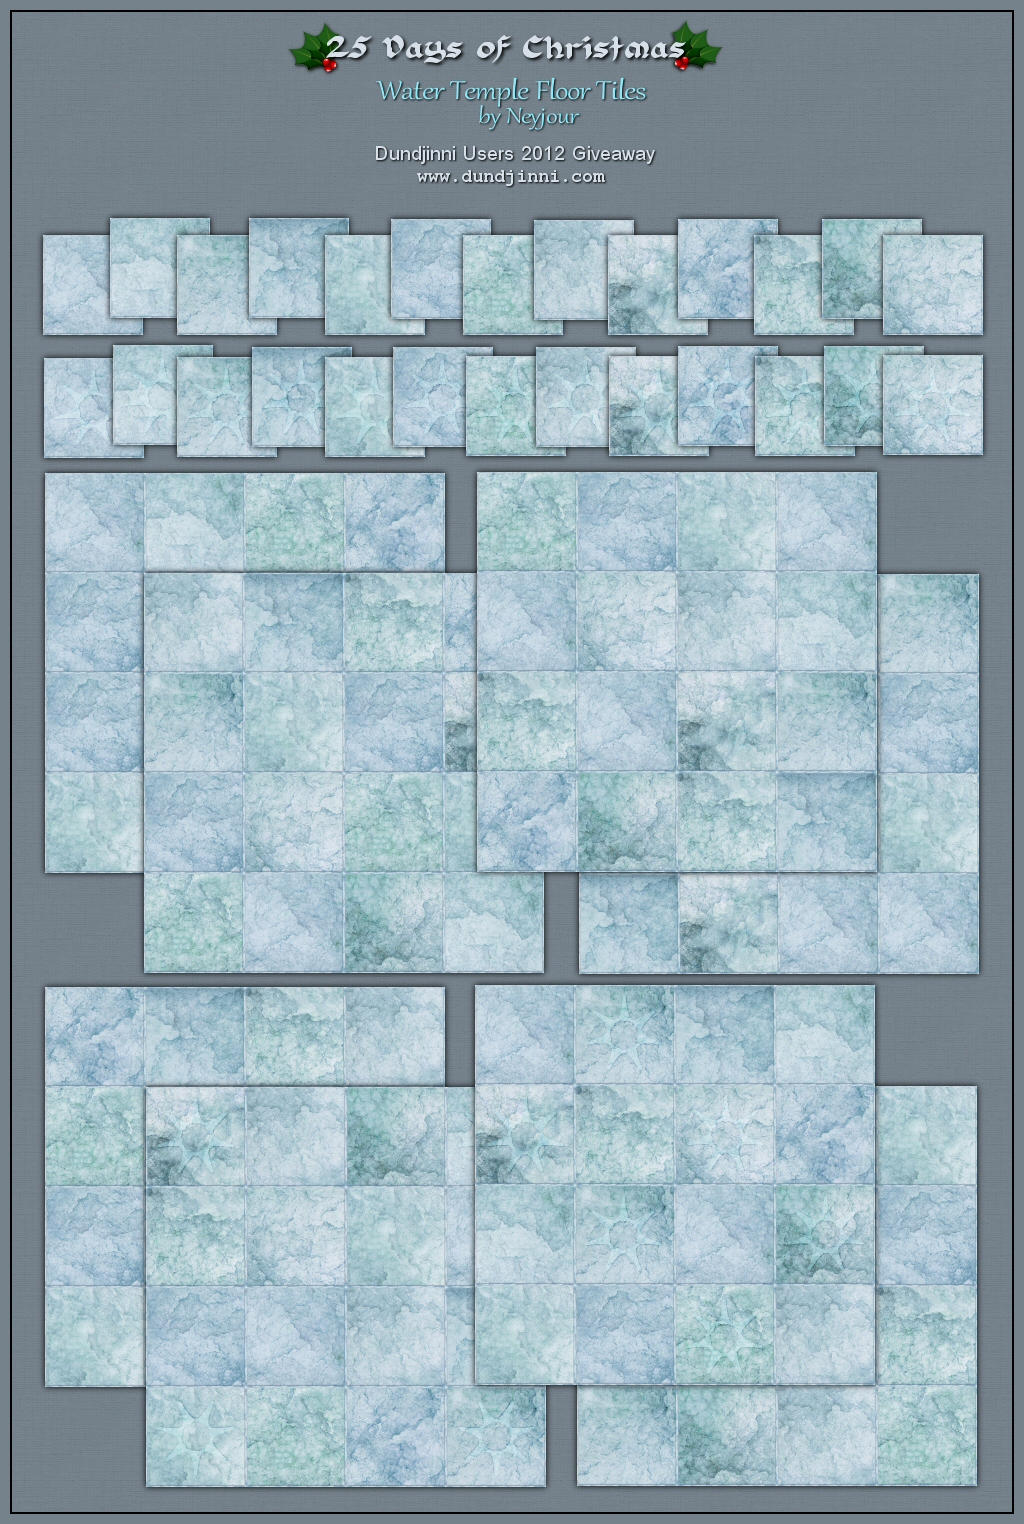 Water Temple Floor Tiles by Neyjour